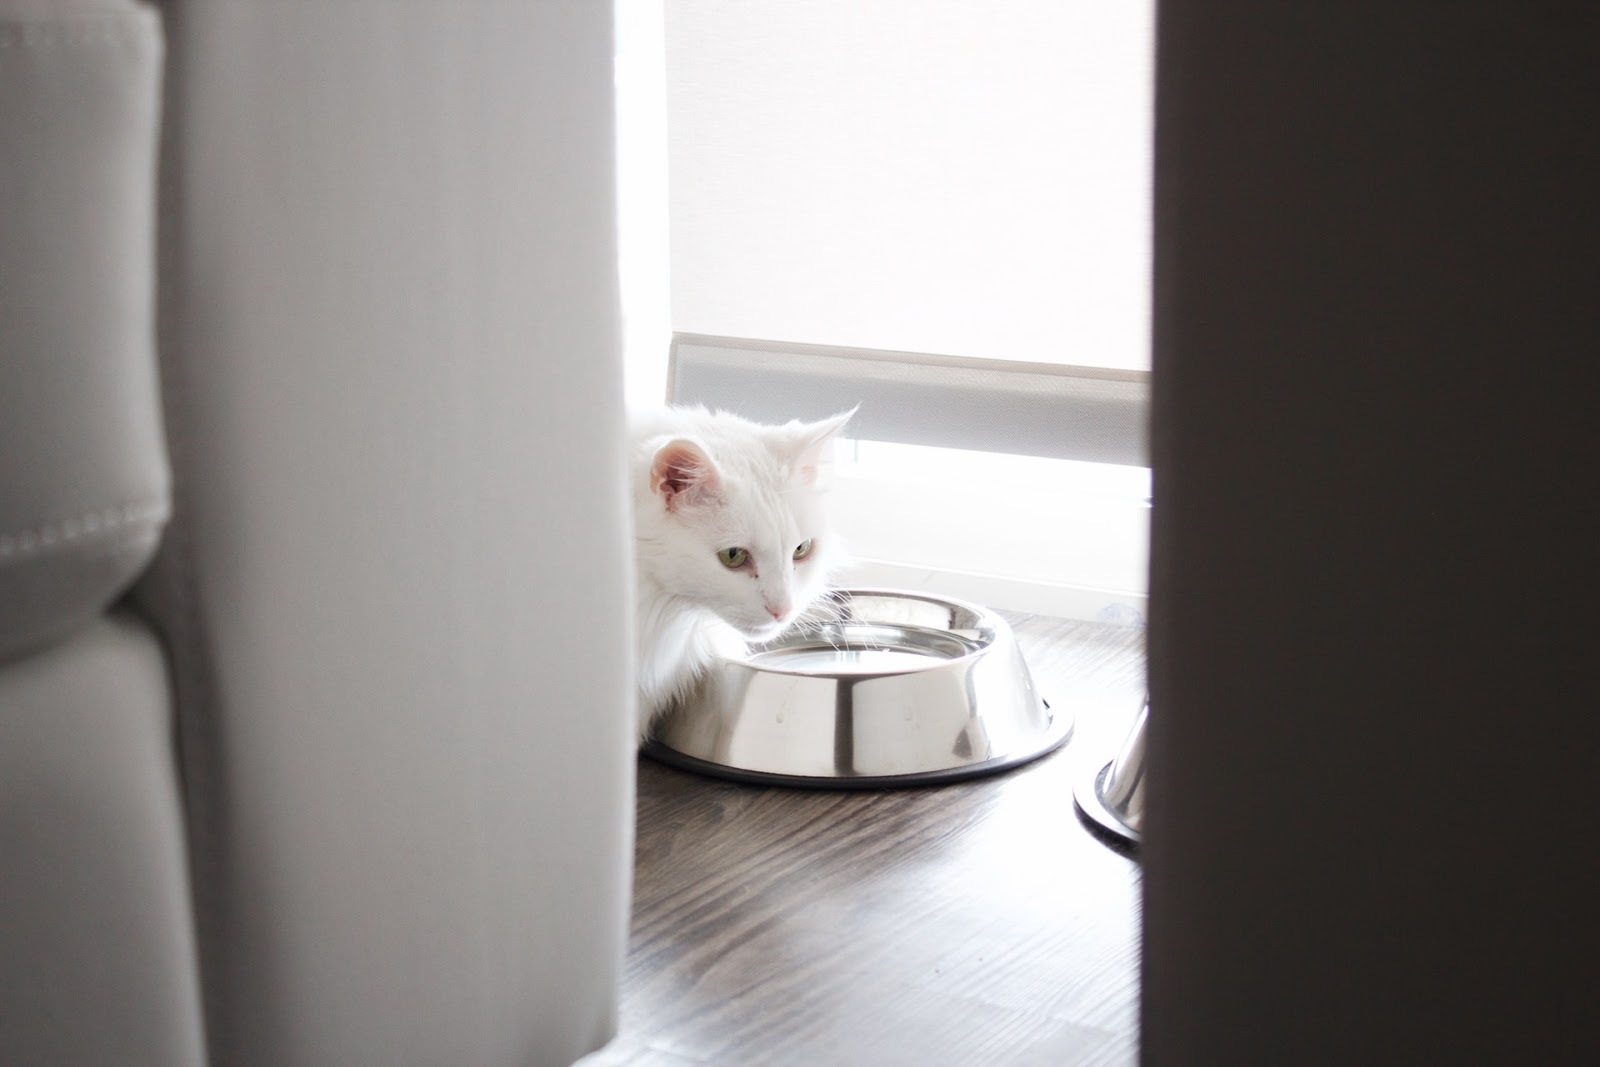 A white cat is looking into a silver food dish